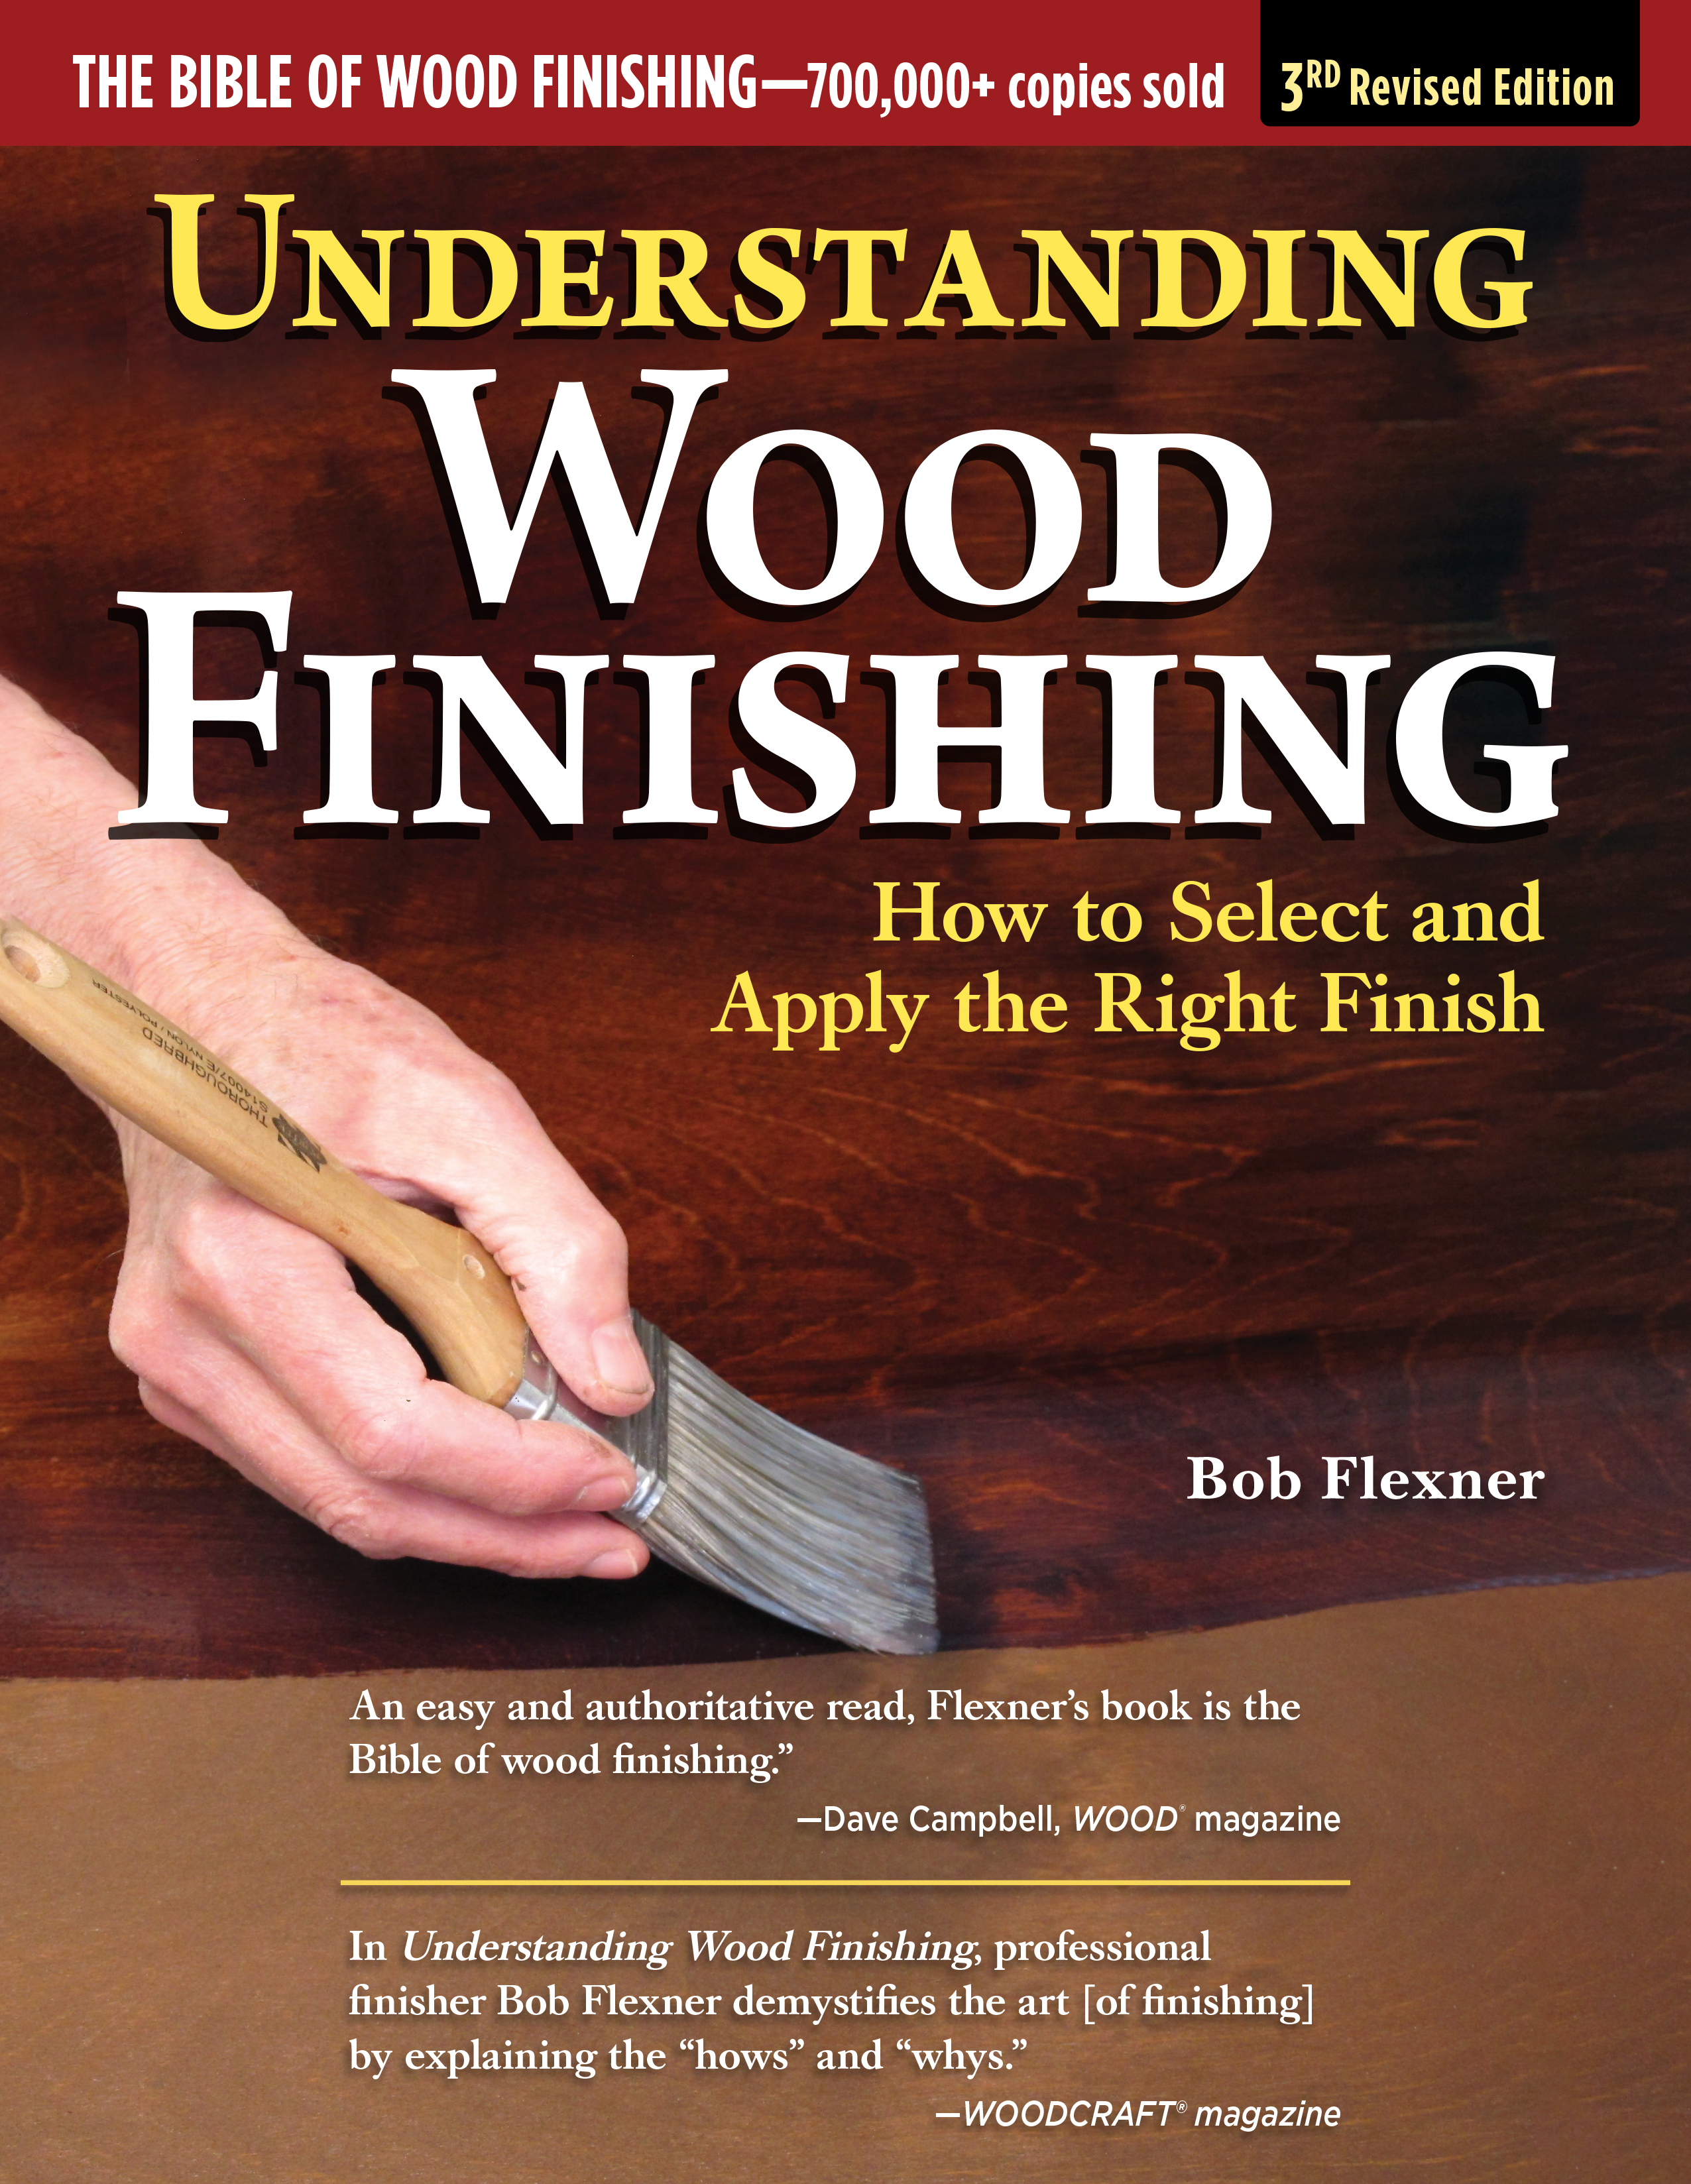 Understanding Wood Finishing, New Revised Edition